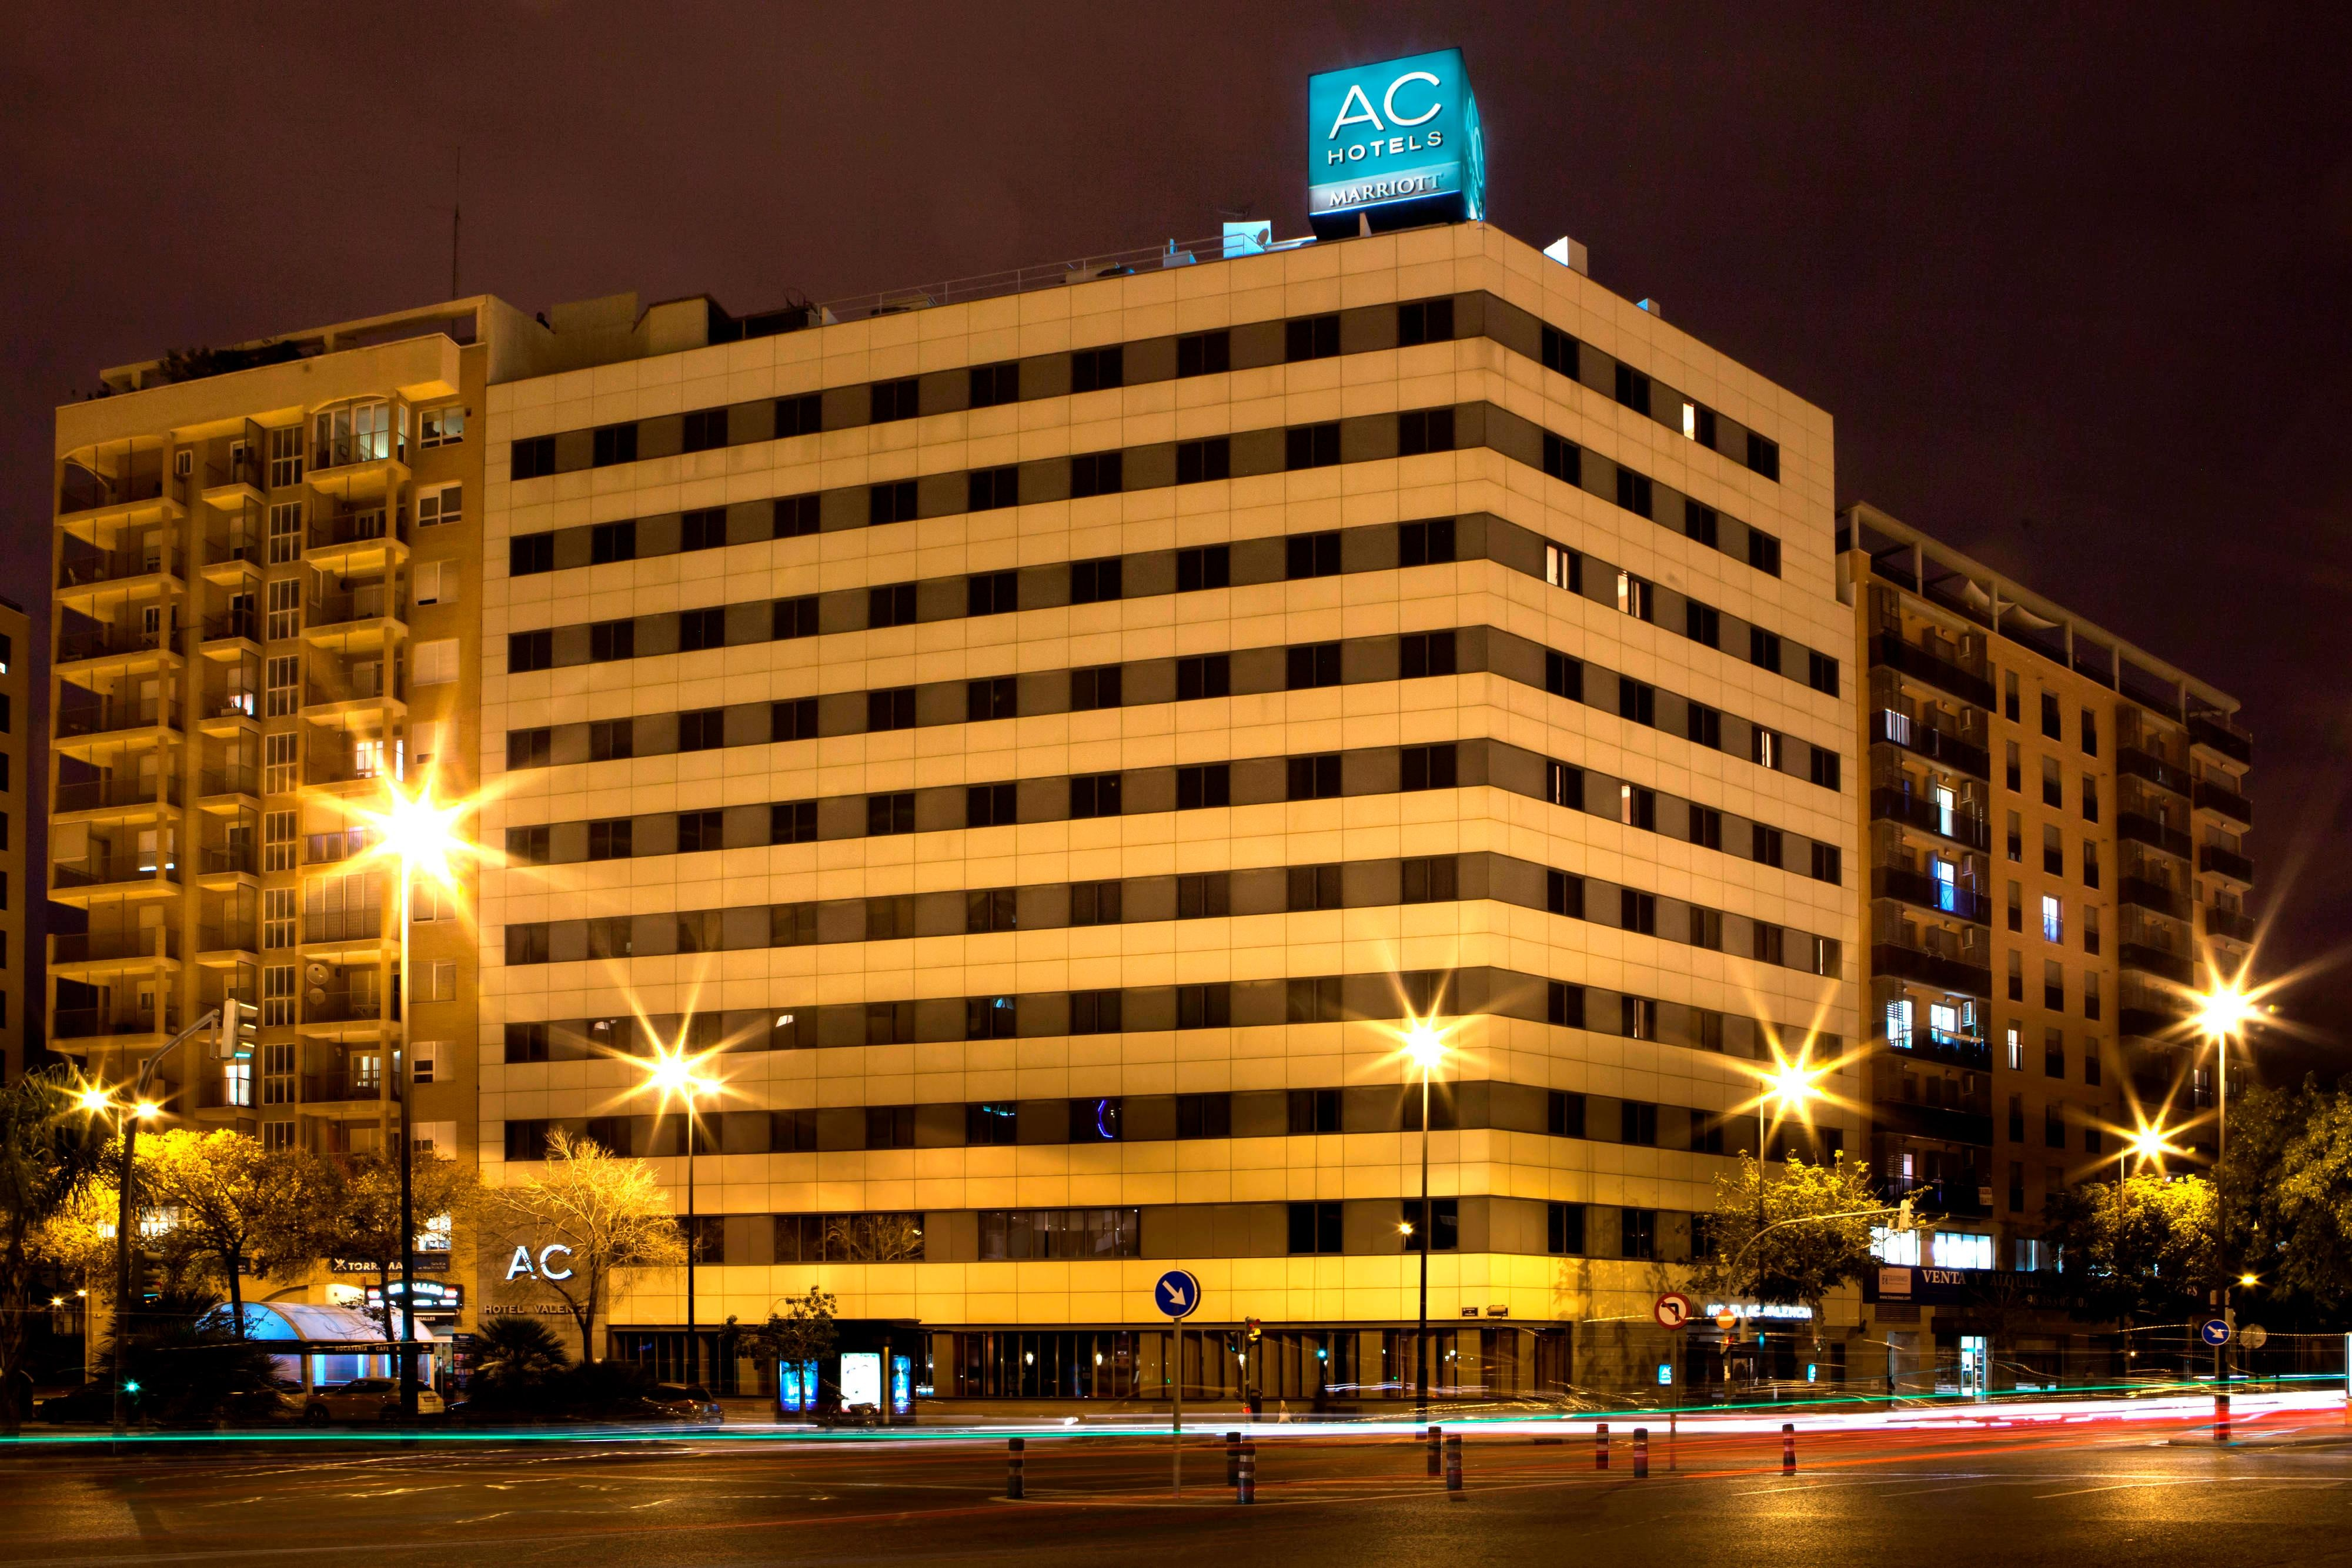 Hotel exterior in Valencia city